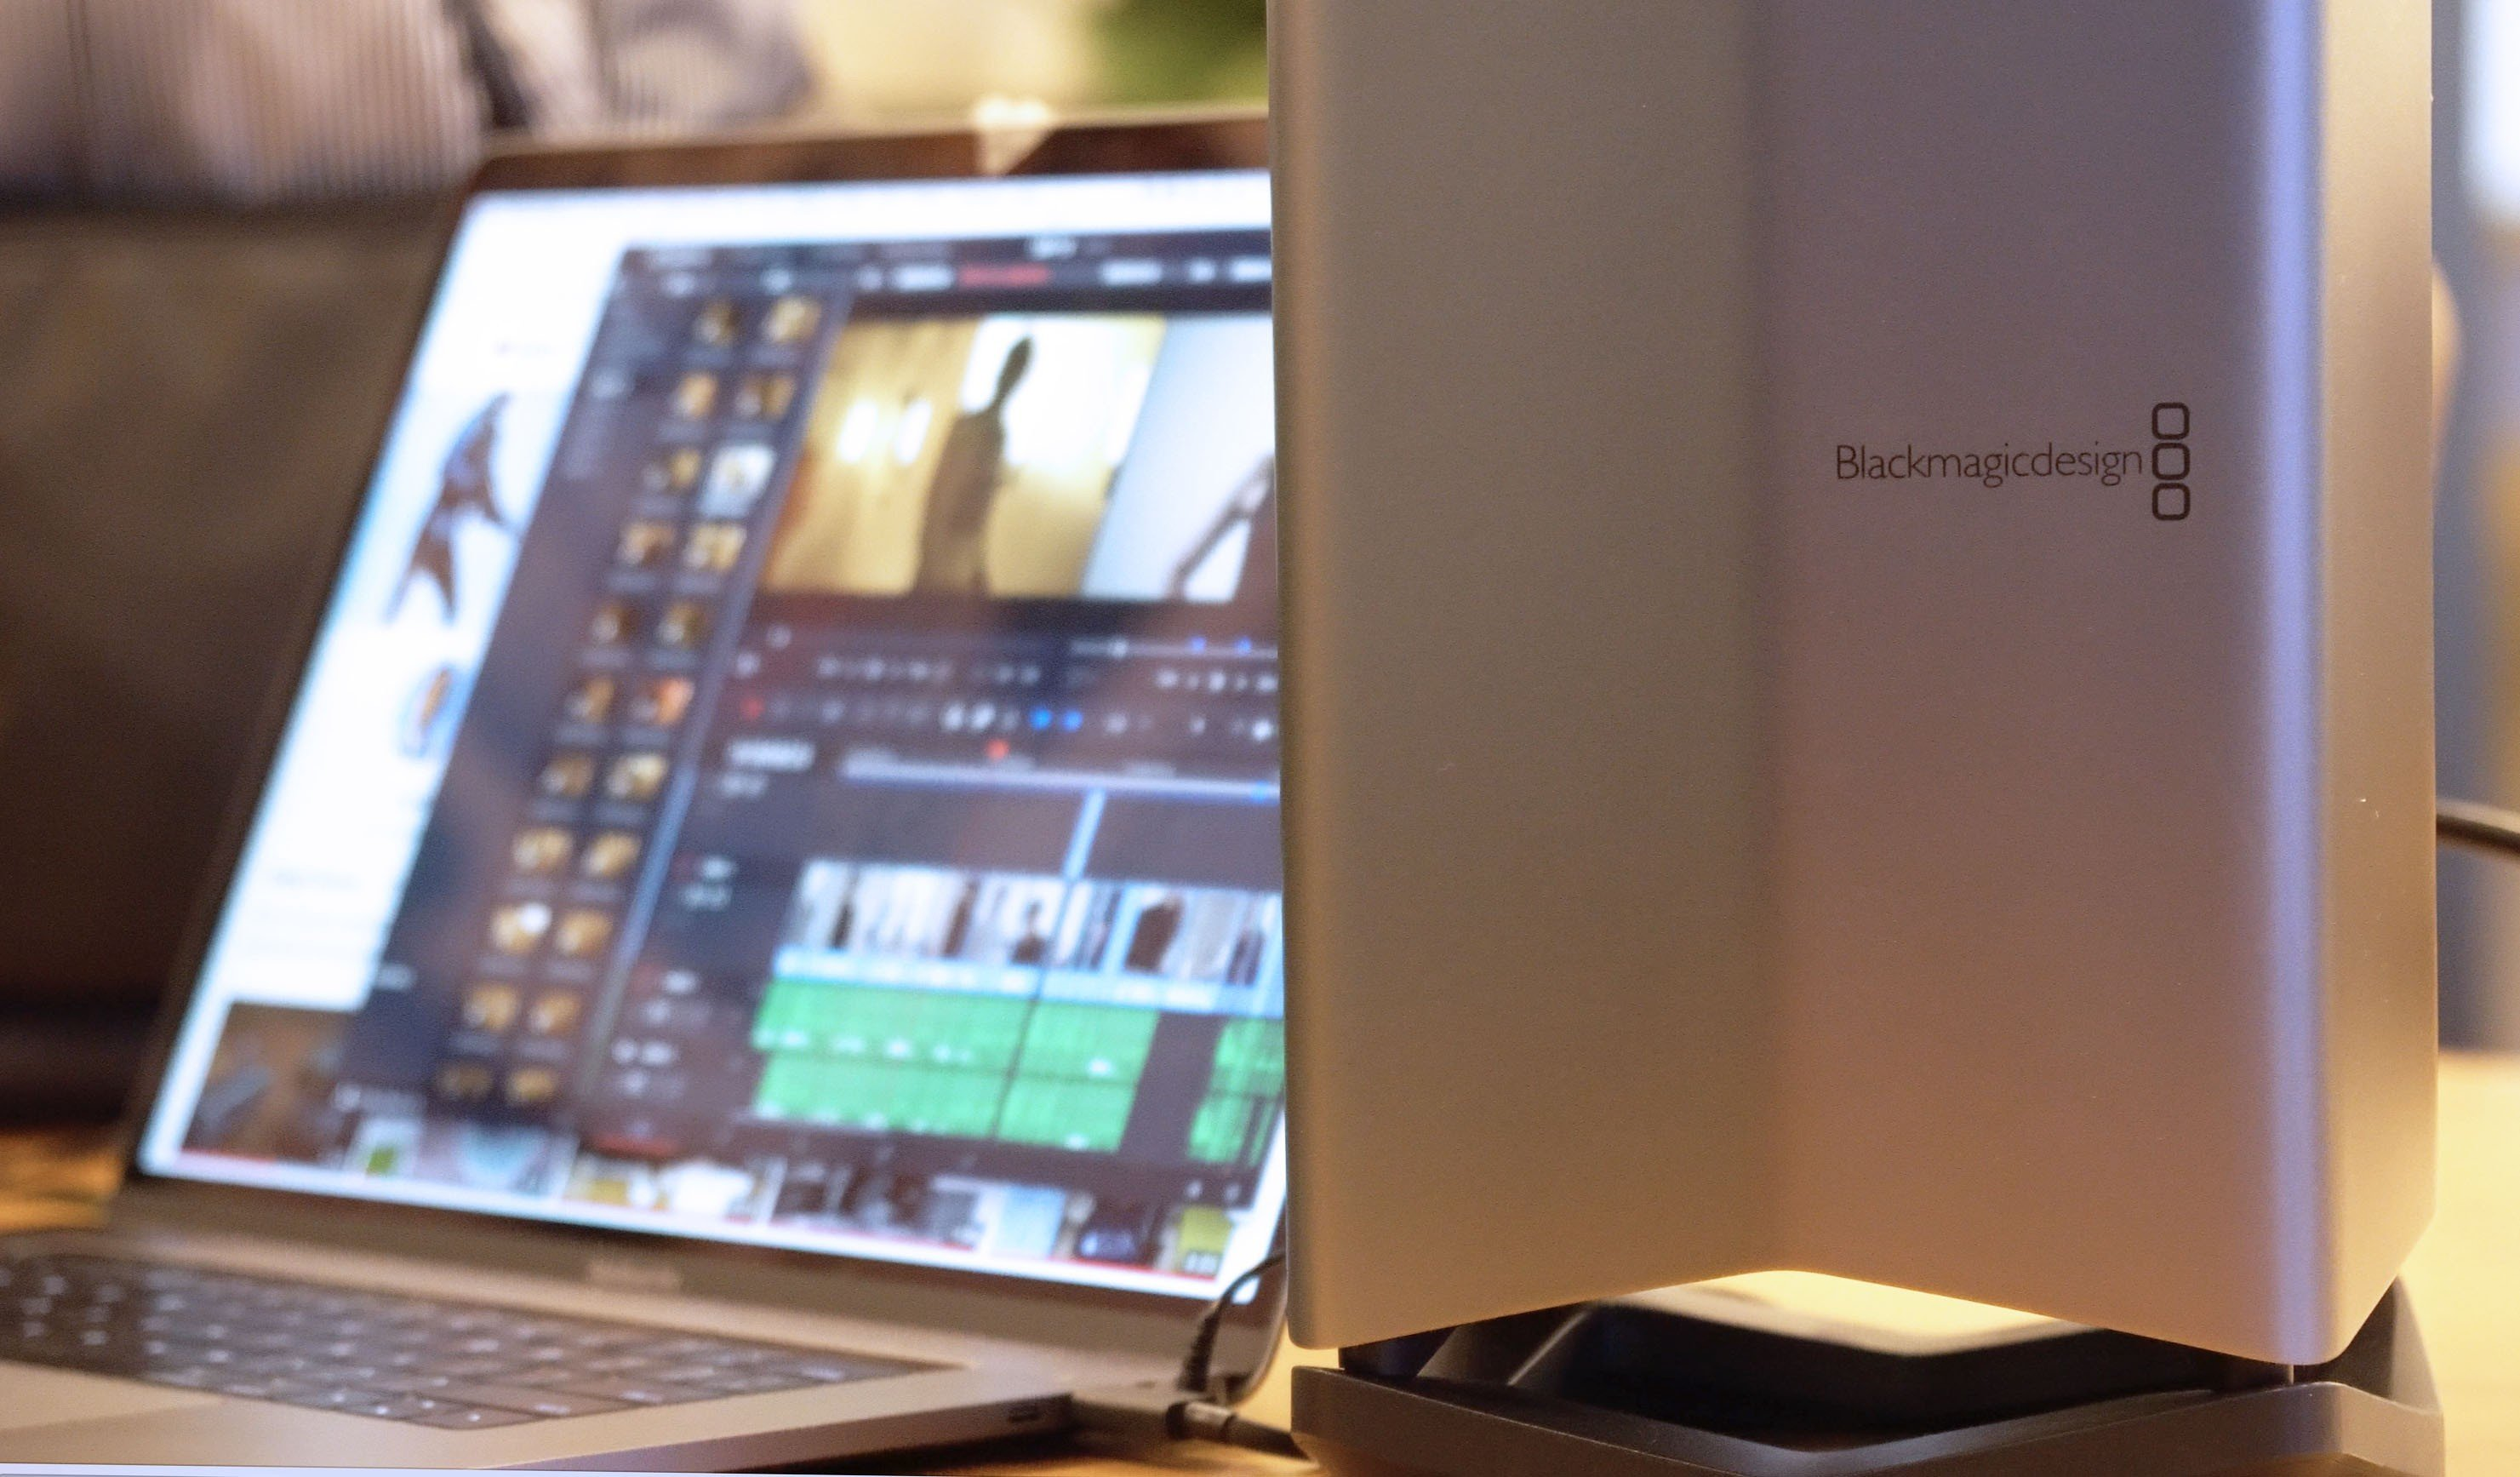 Connecting Your Laptop To A Blackmagic Egpu Can Turn It Into A Graphics Powerhouse South China Morning Post